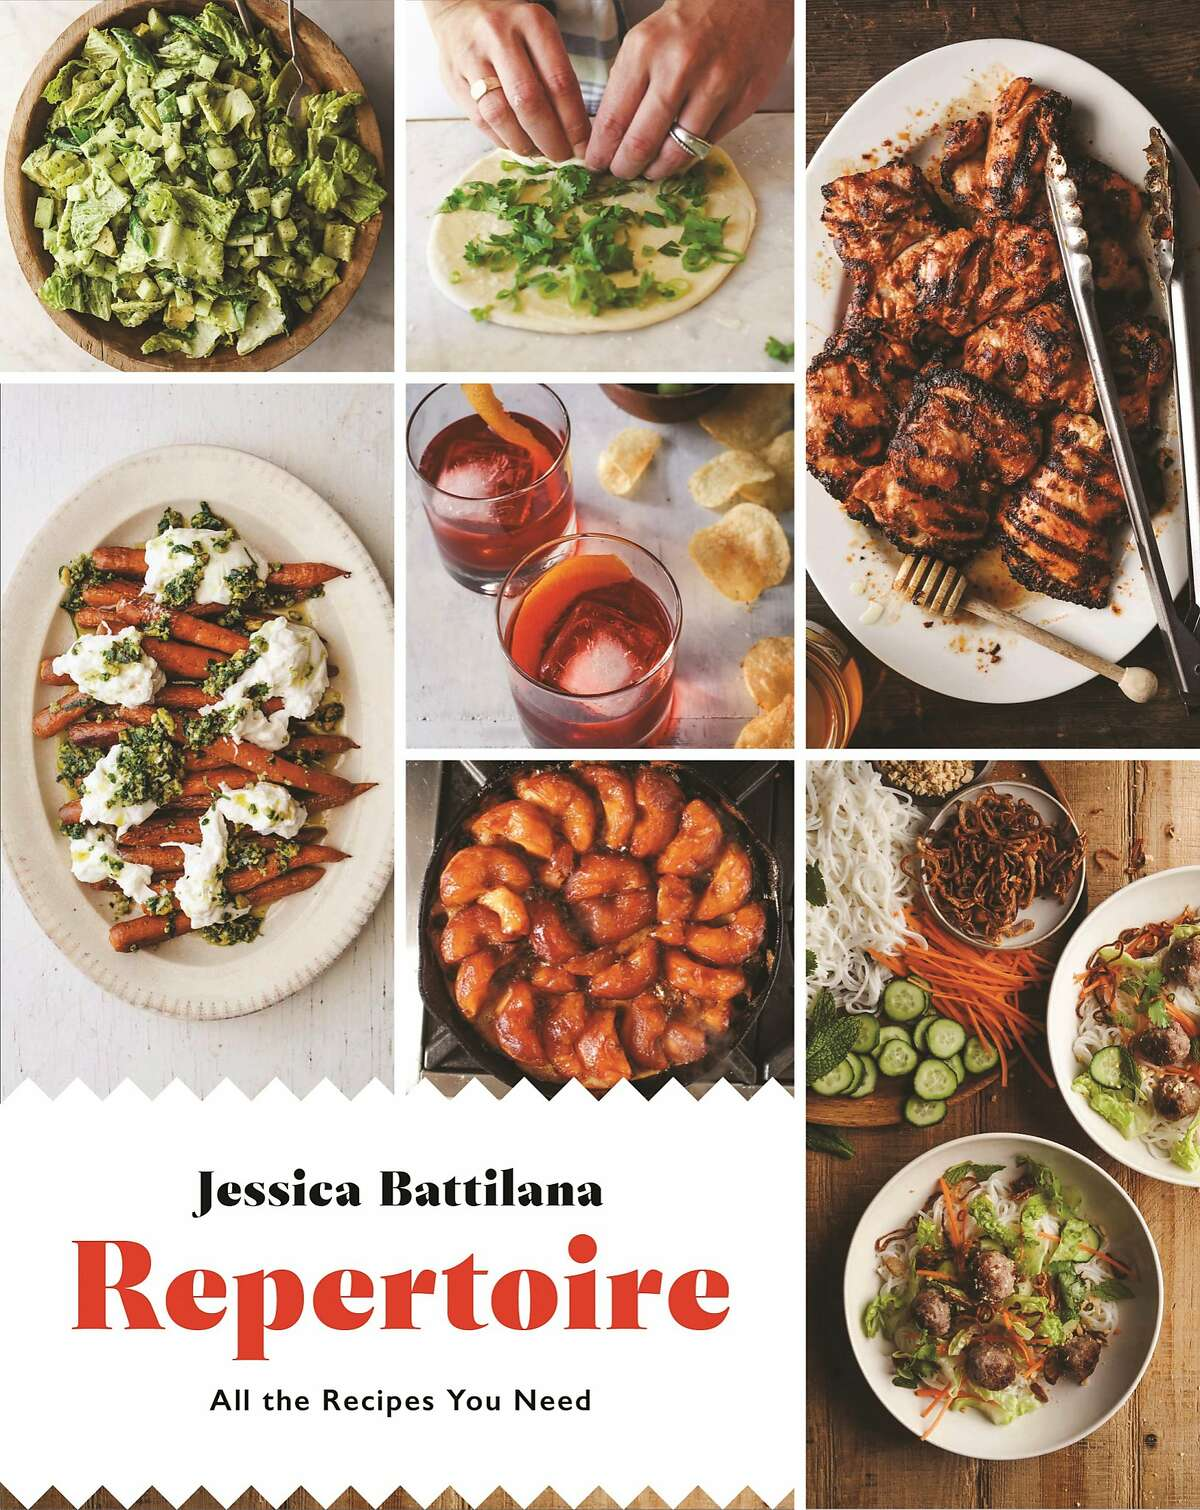 """Photos from Jessica Battilana's cookbook, """"Repetoire.""""�Used with permission of Little, Brown and Company, New York."""